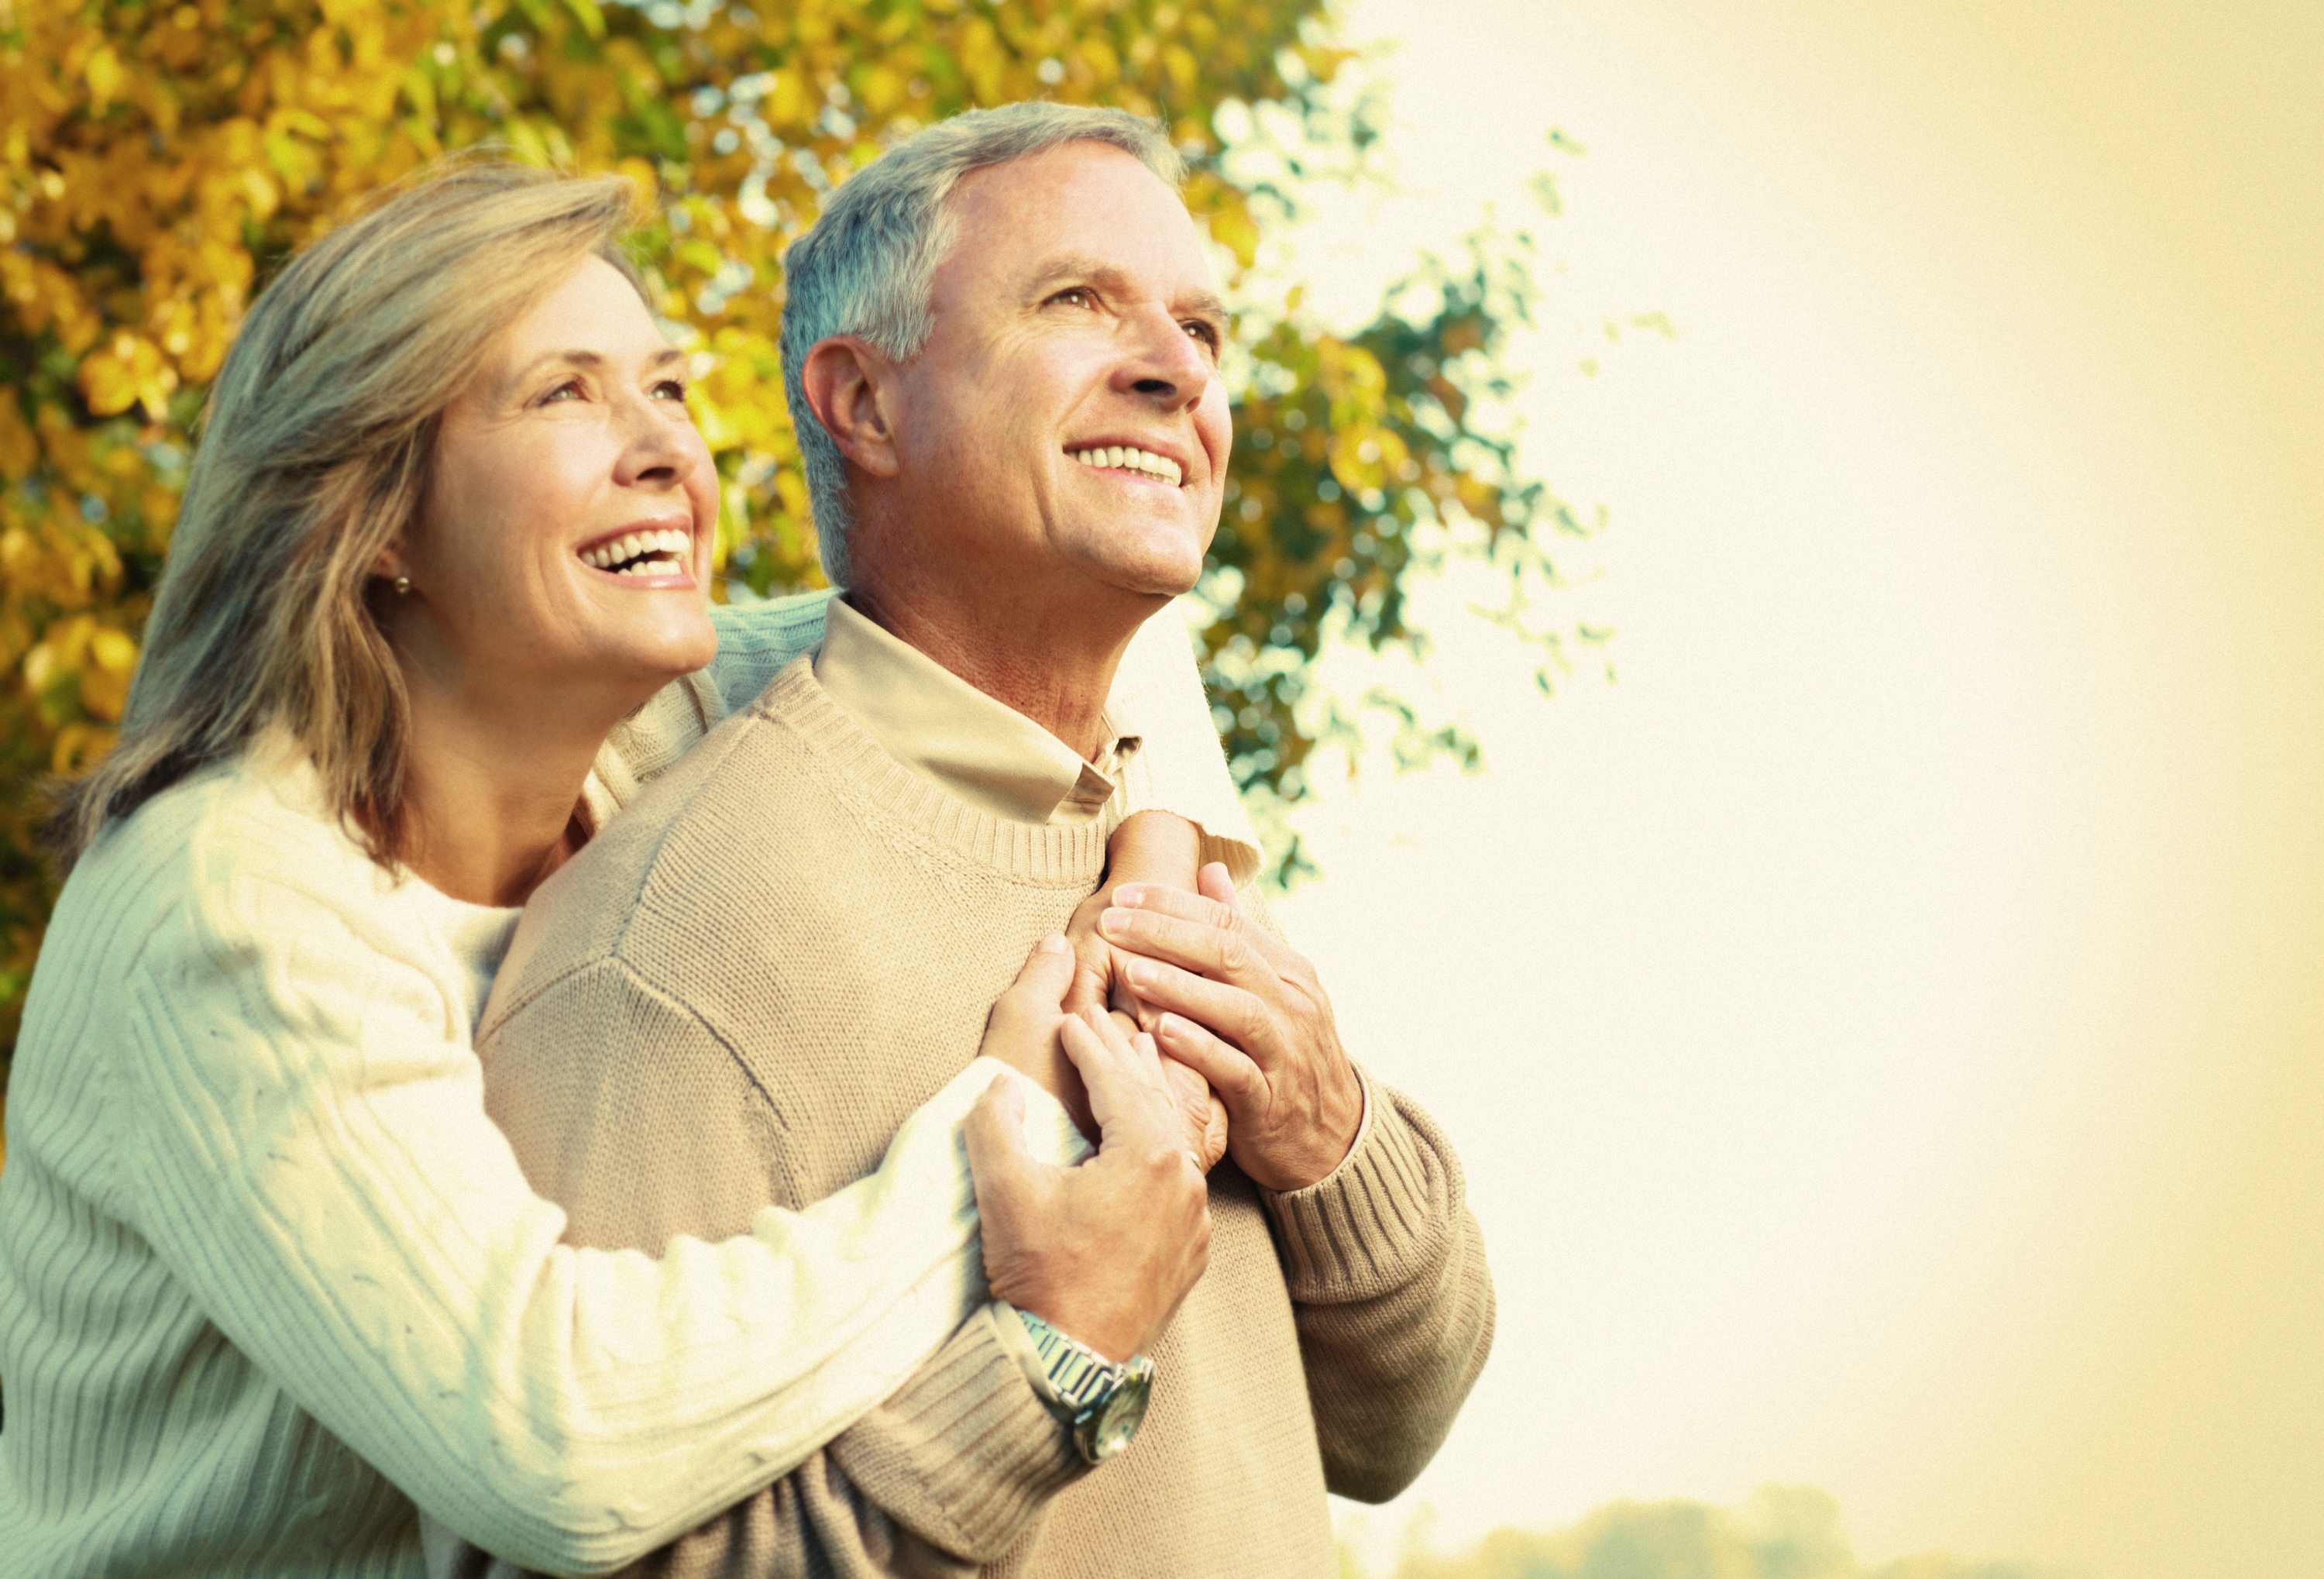 Over 50's Life Insurance